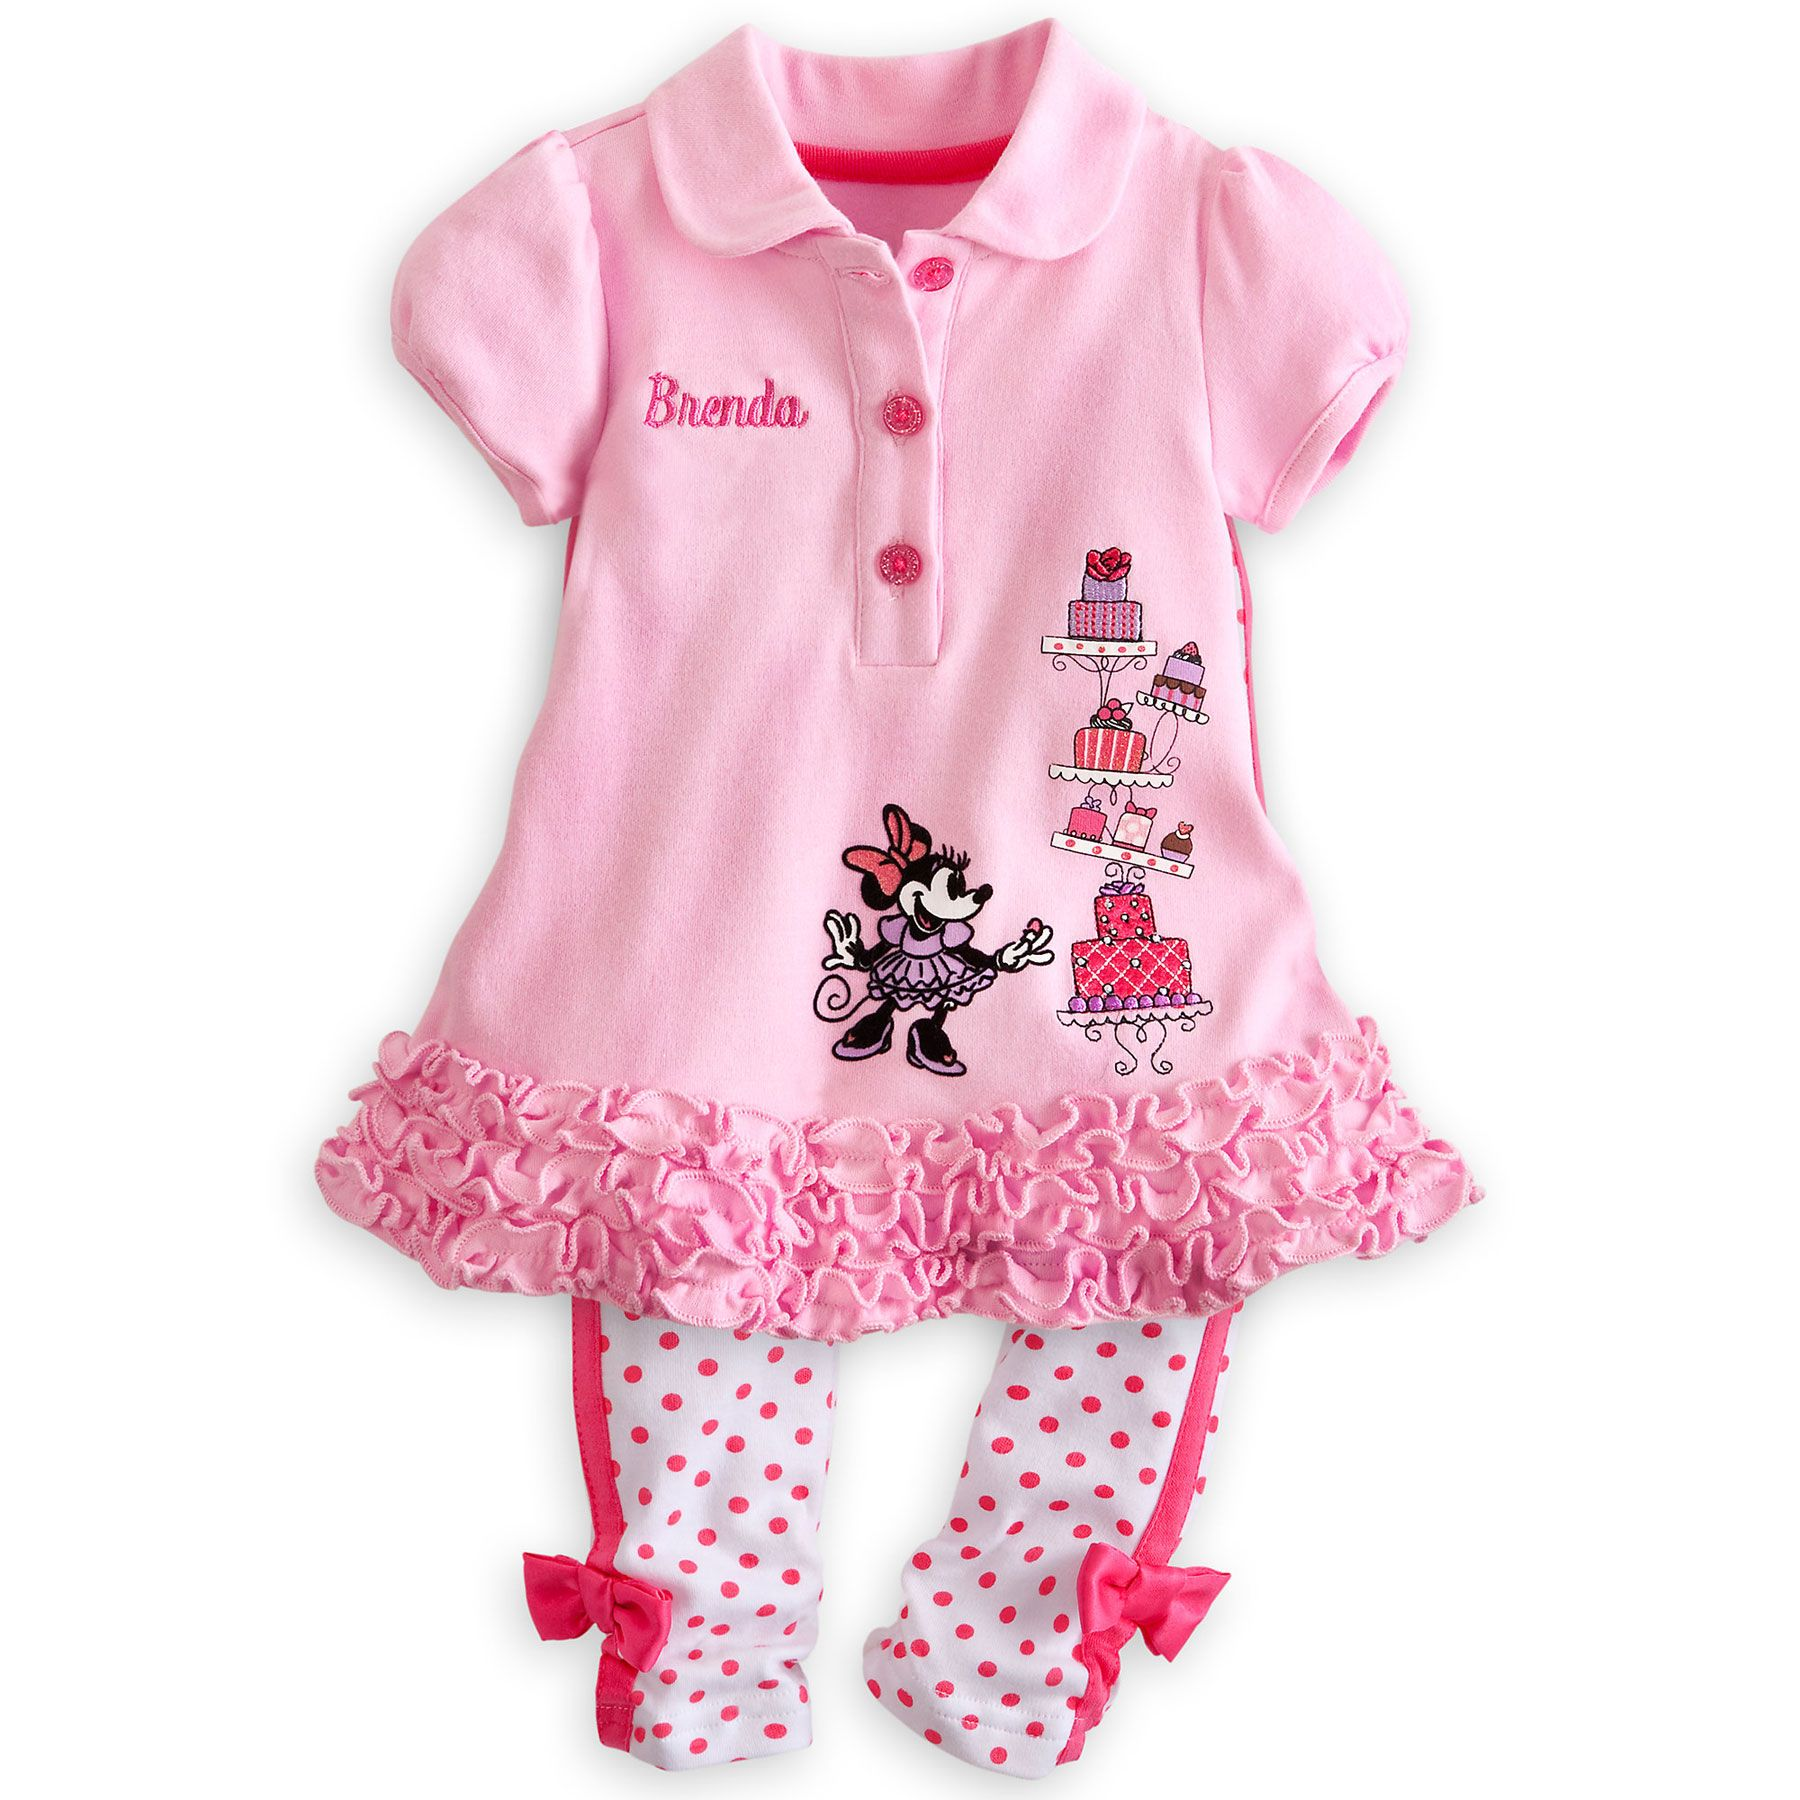 Minnie Mouse Polo Dress and Leggings Set for Baby Personalizable